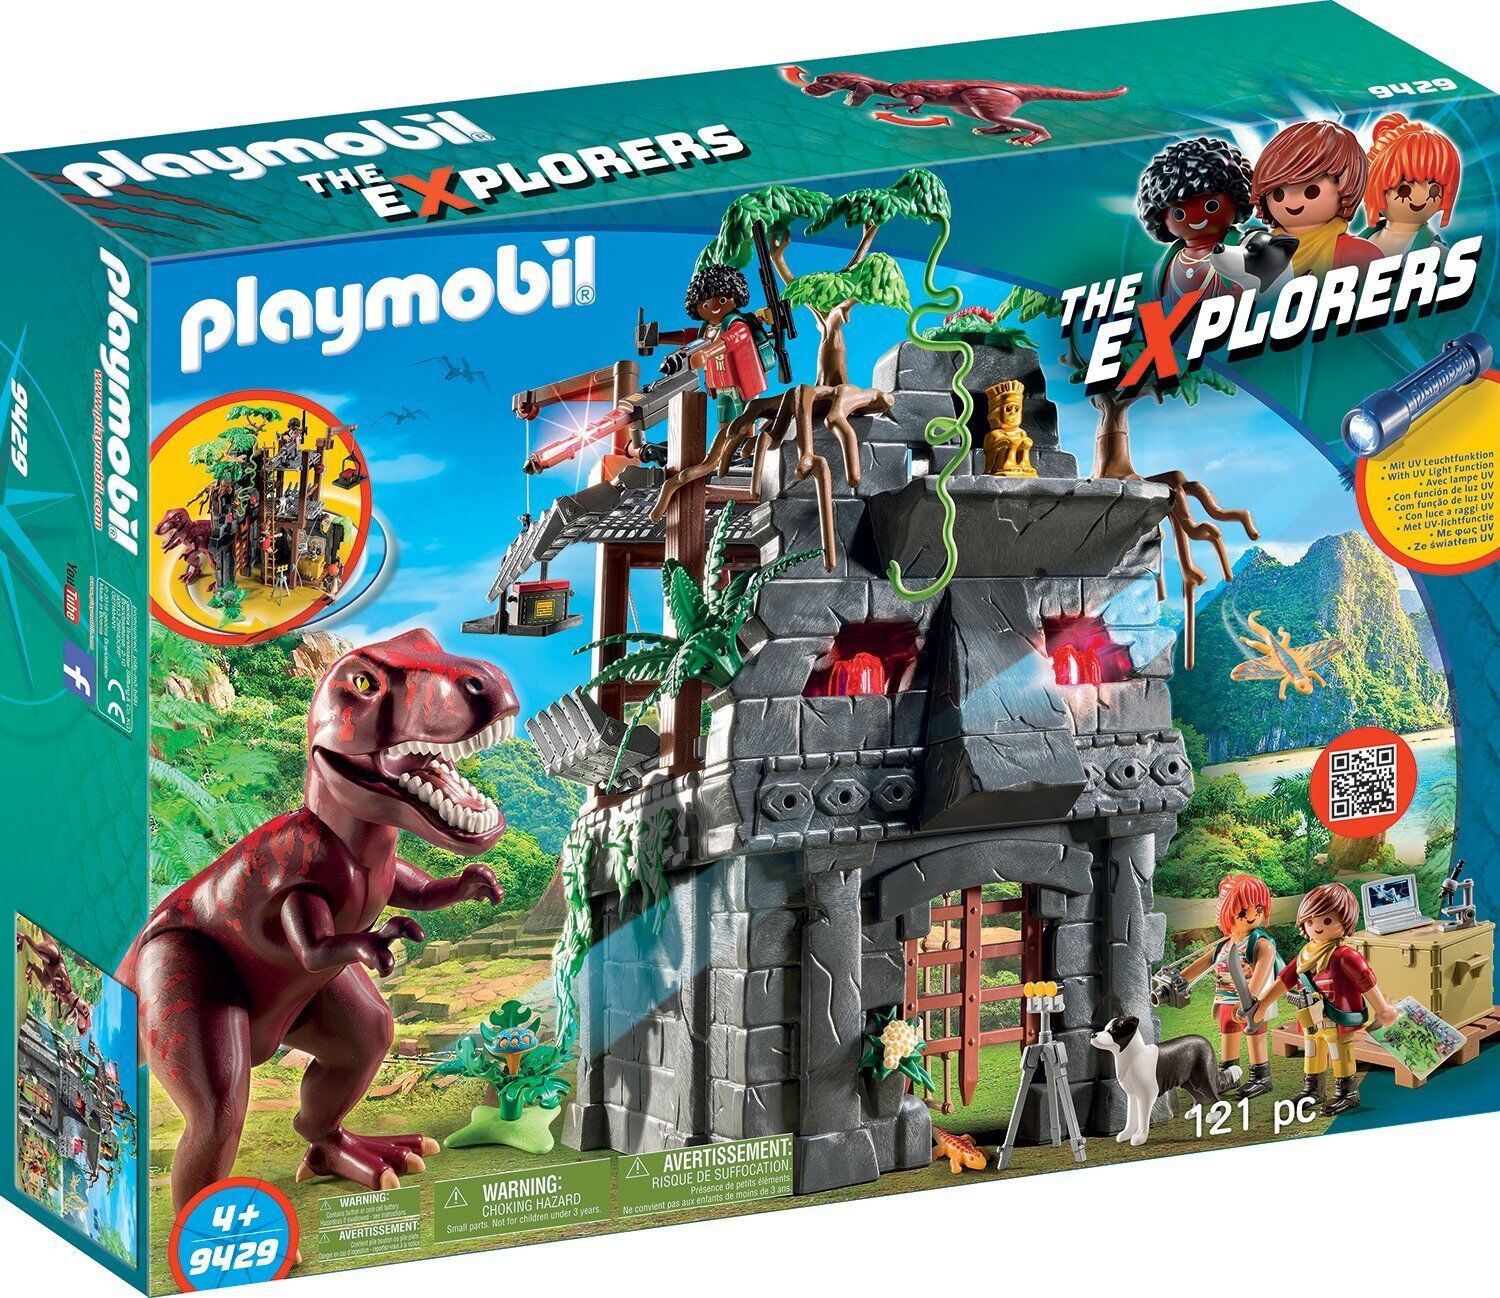 Playmobil - The Explorers - 9429 - Basecamp mit T-Rex - NEU OVP